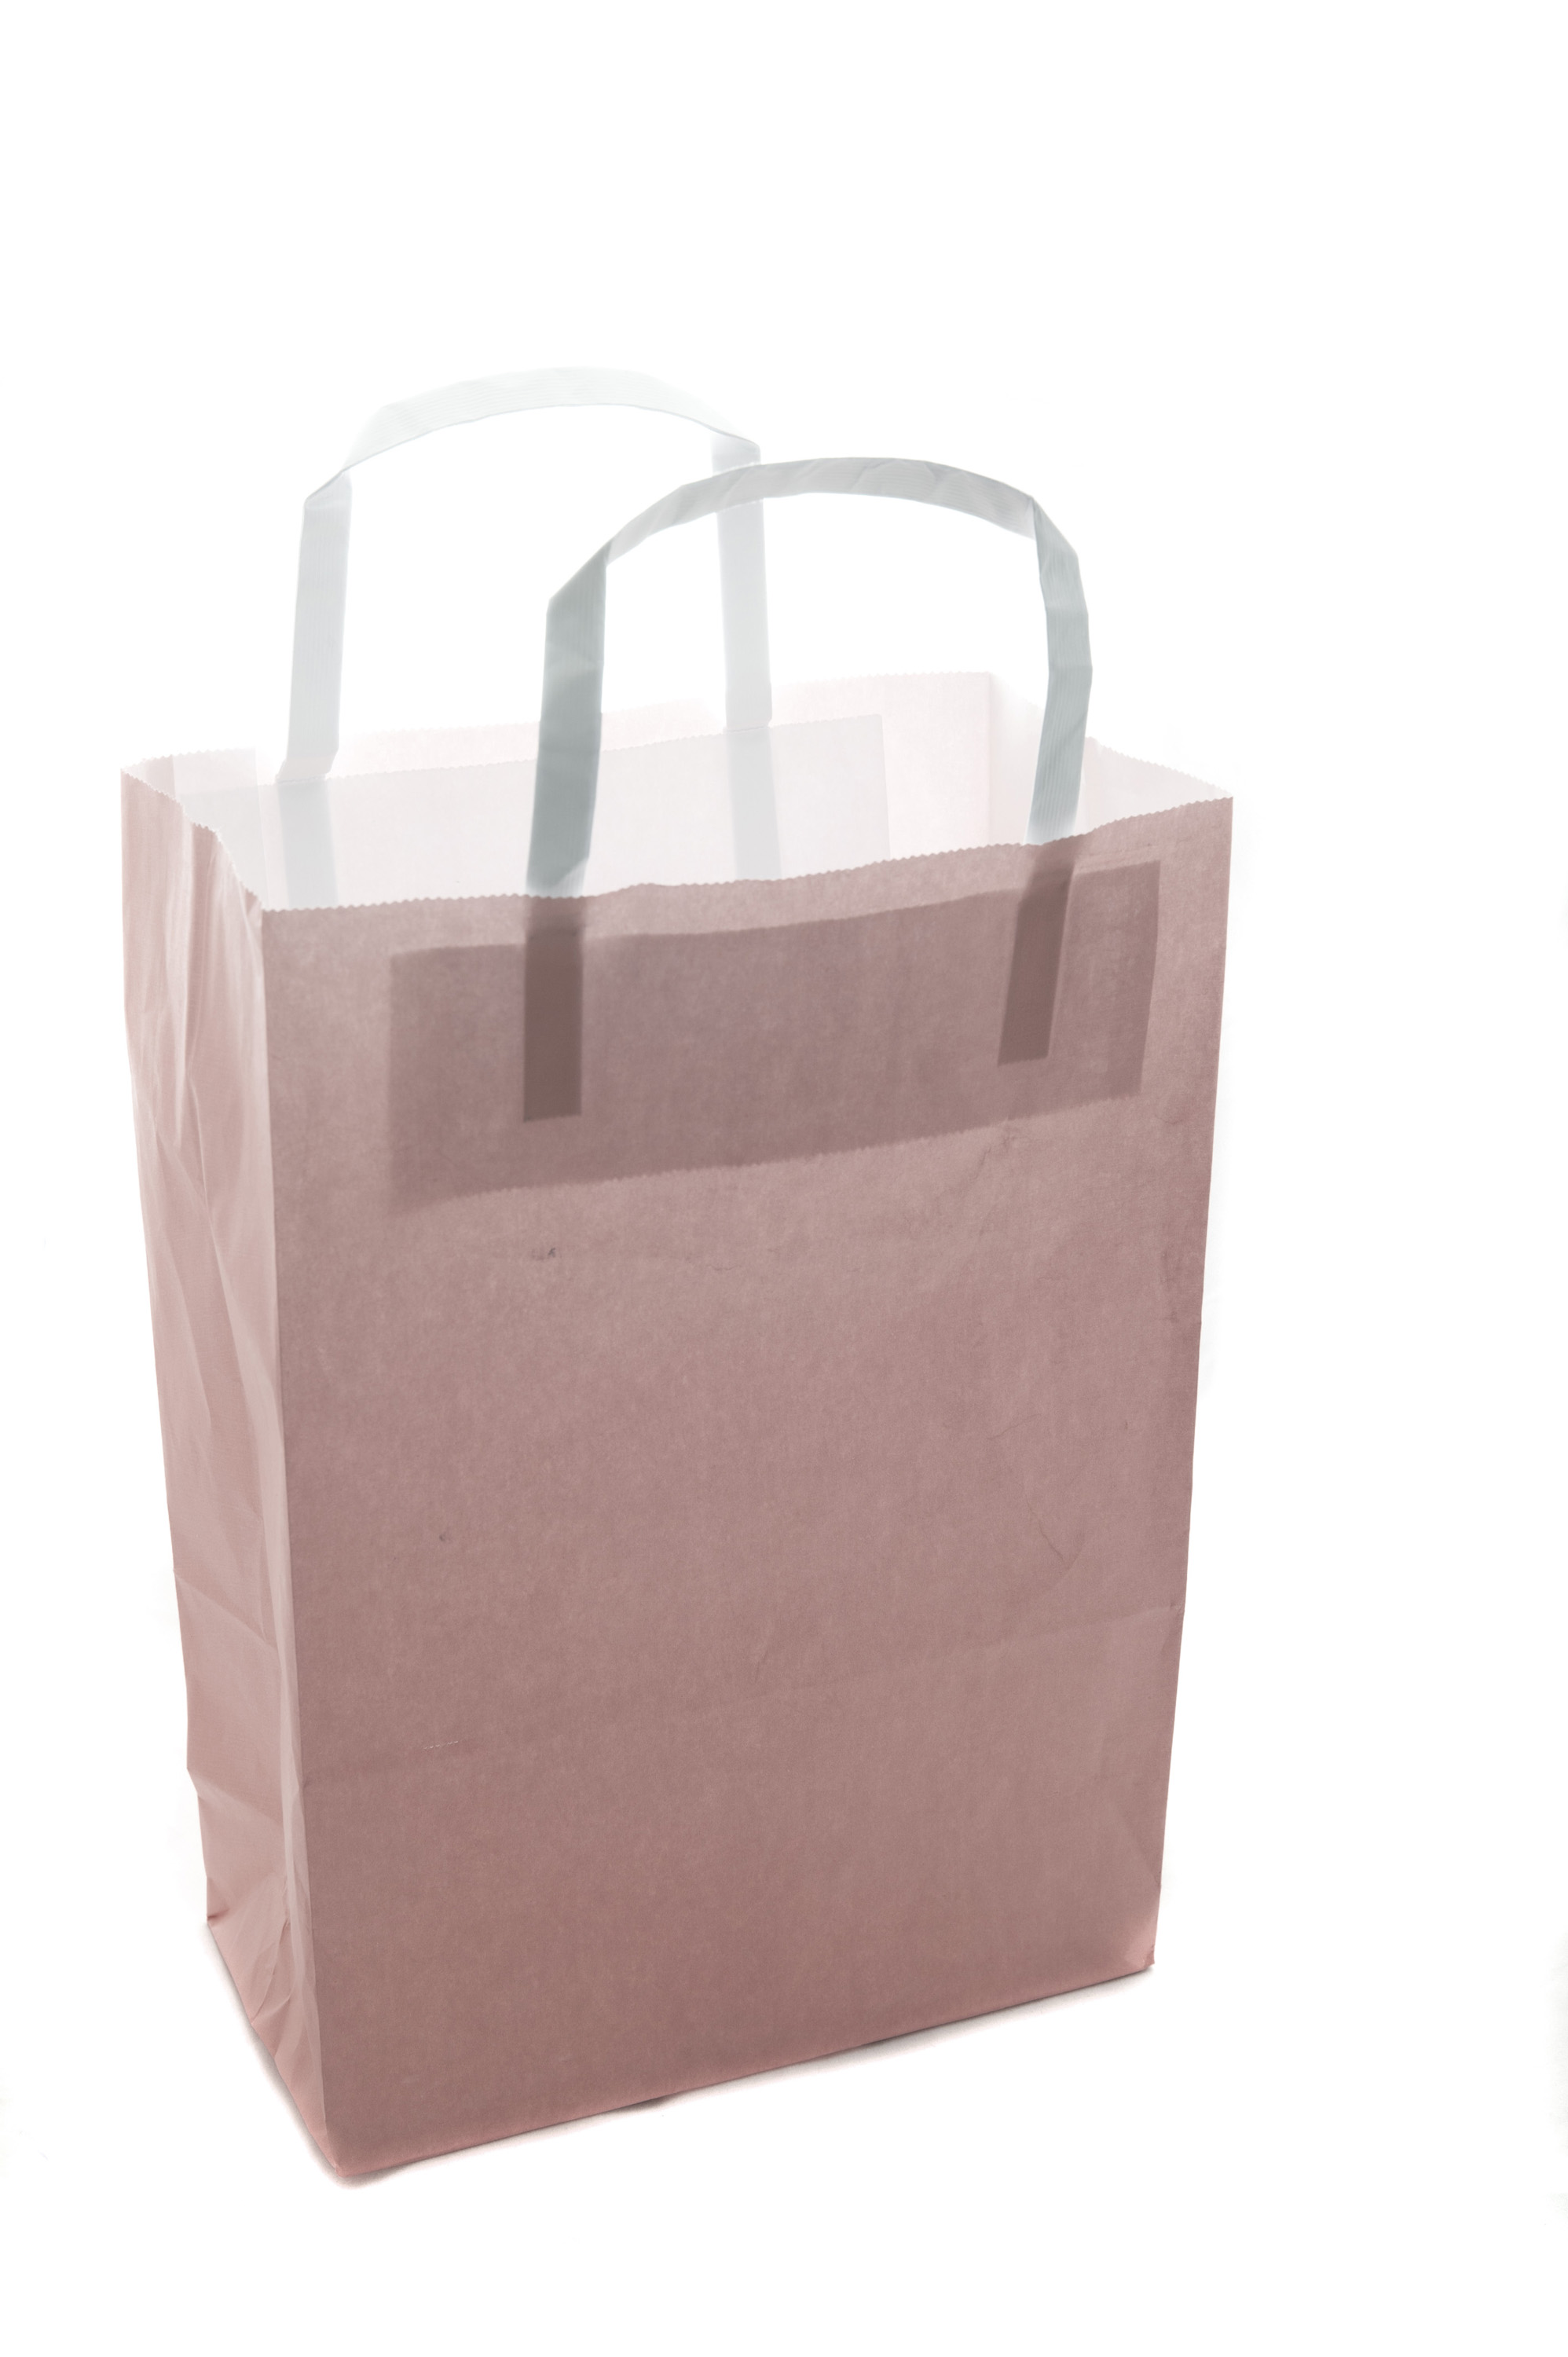 Plain brown paper carrier or shopping bag isolated on white with blank copy space for your branding or advertising